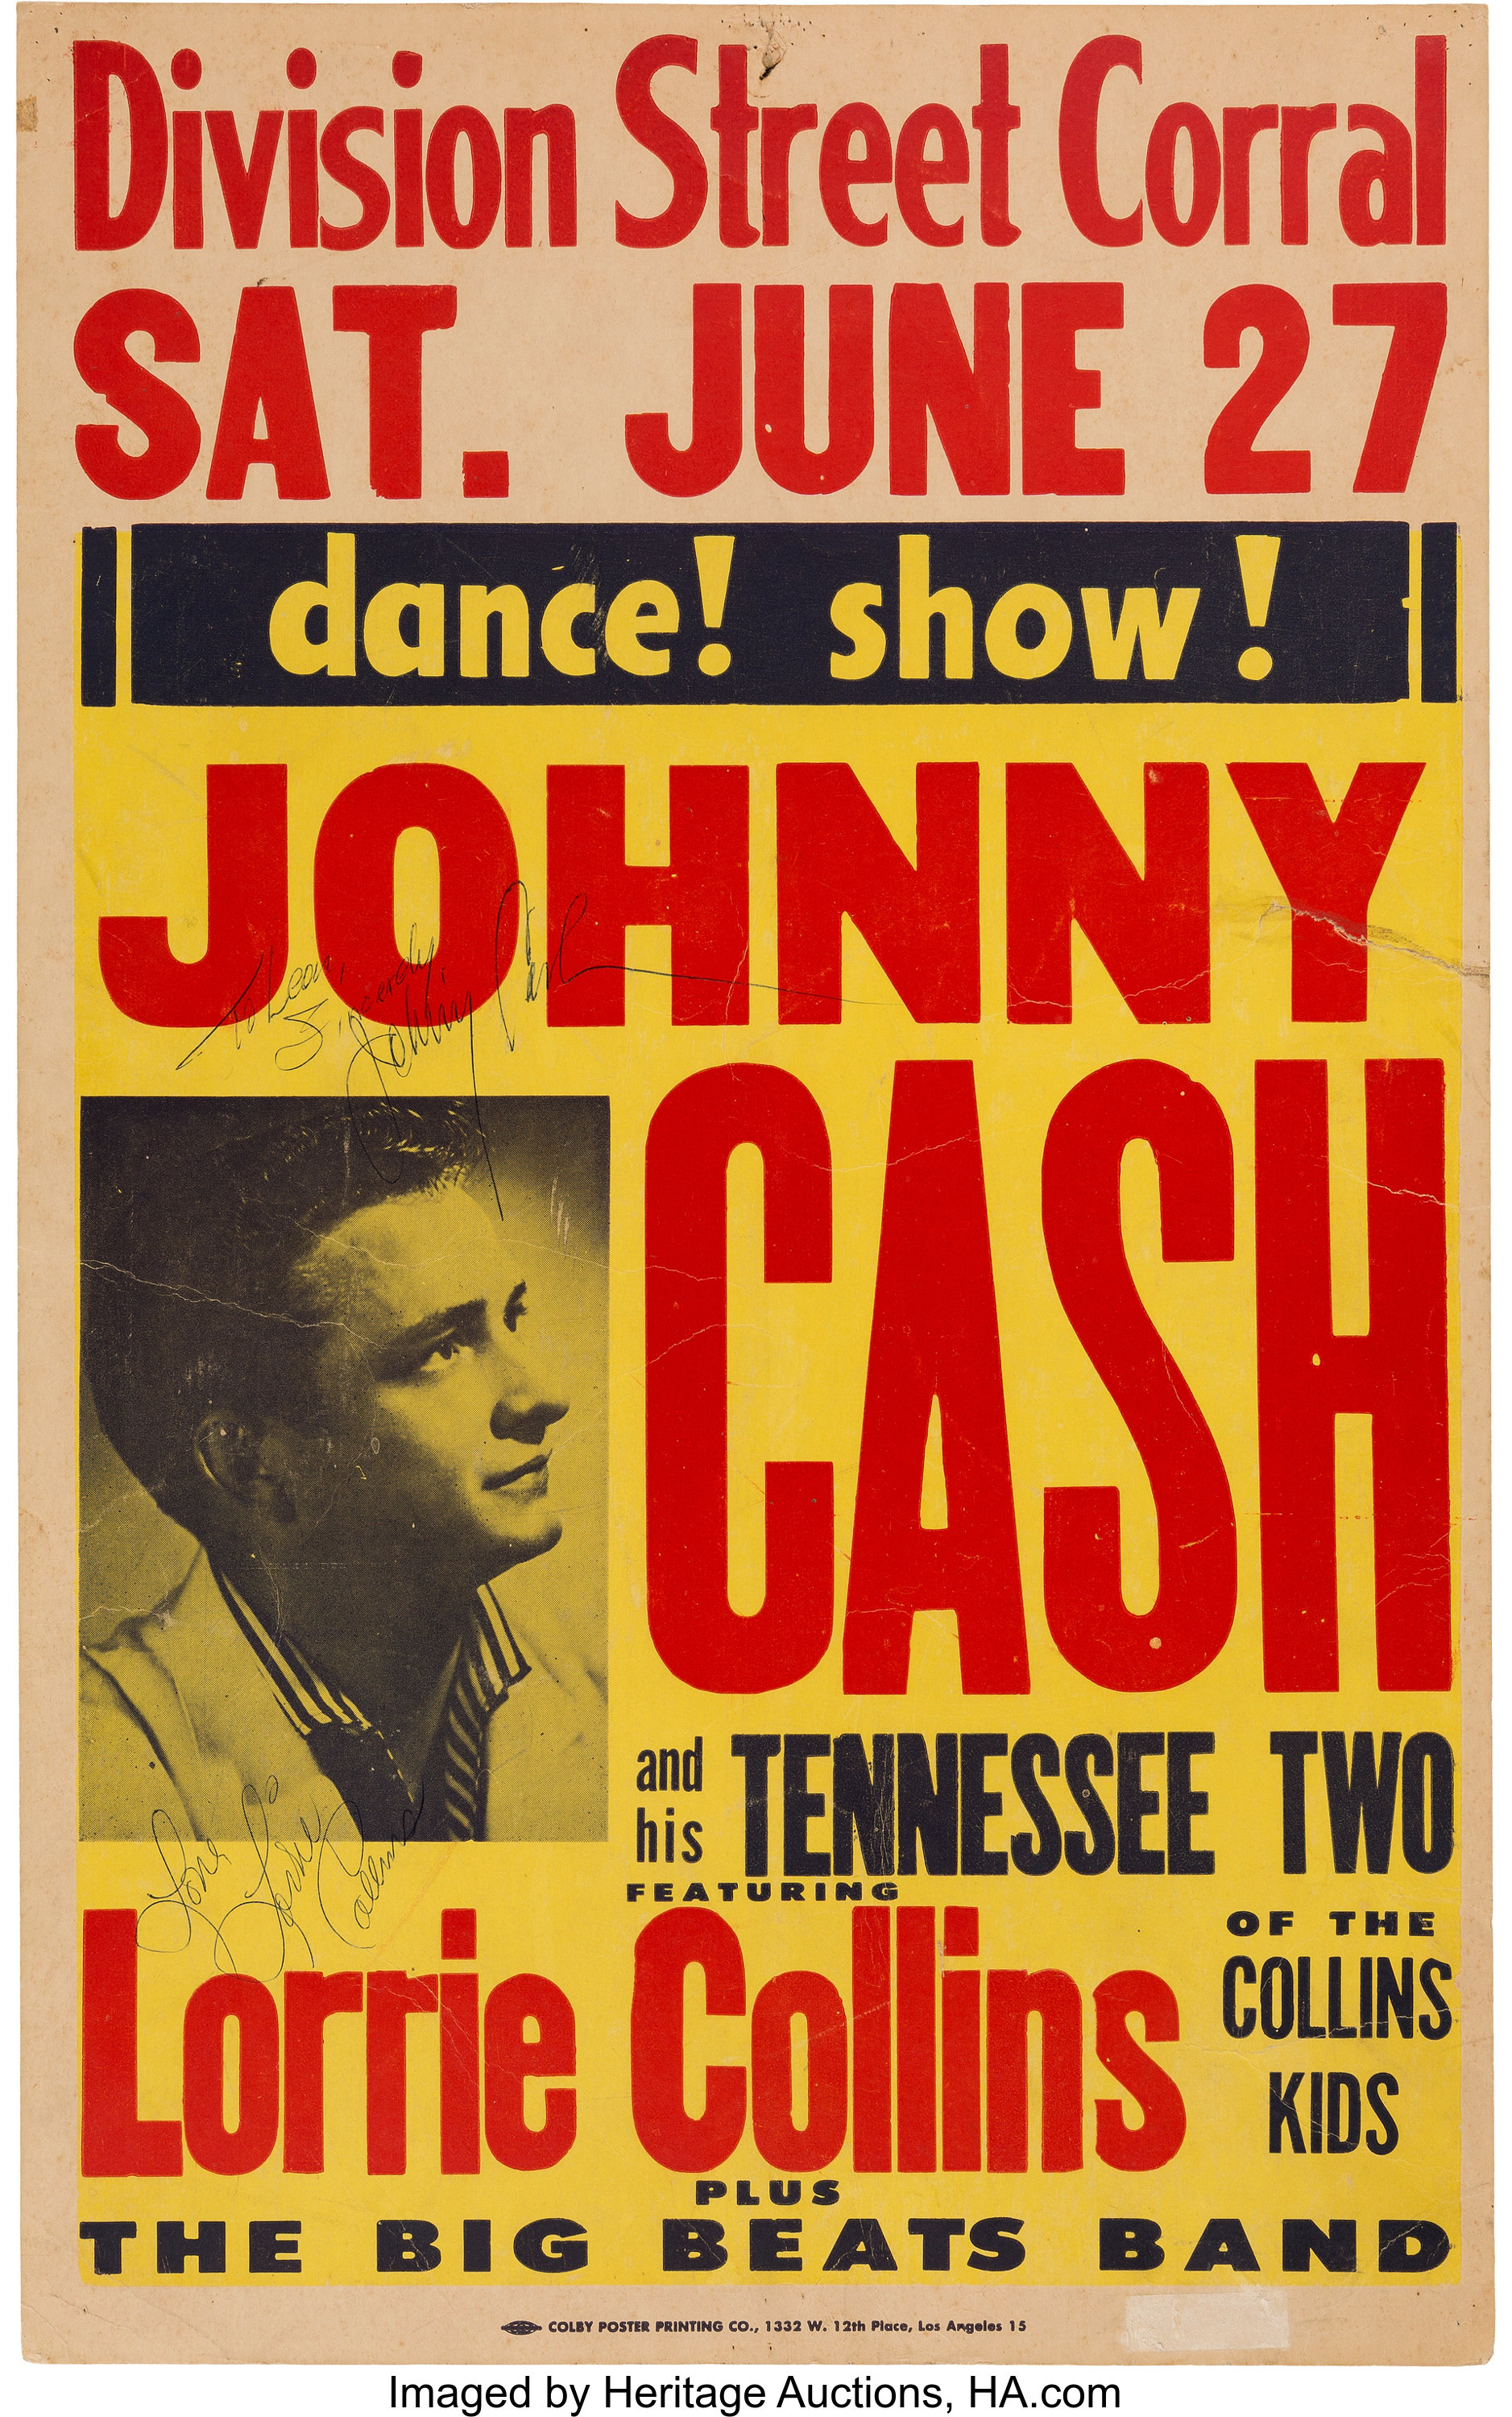 Johnny Cash Division Street Corral Concert Poster With Vintage | Lot #89132 | Heritage Auctions